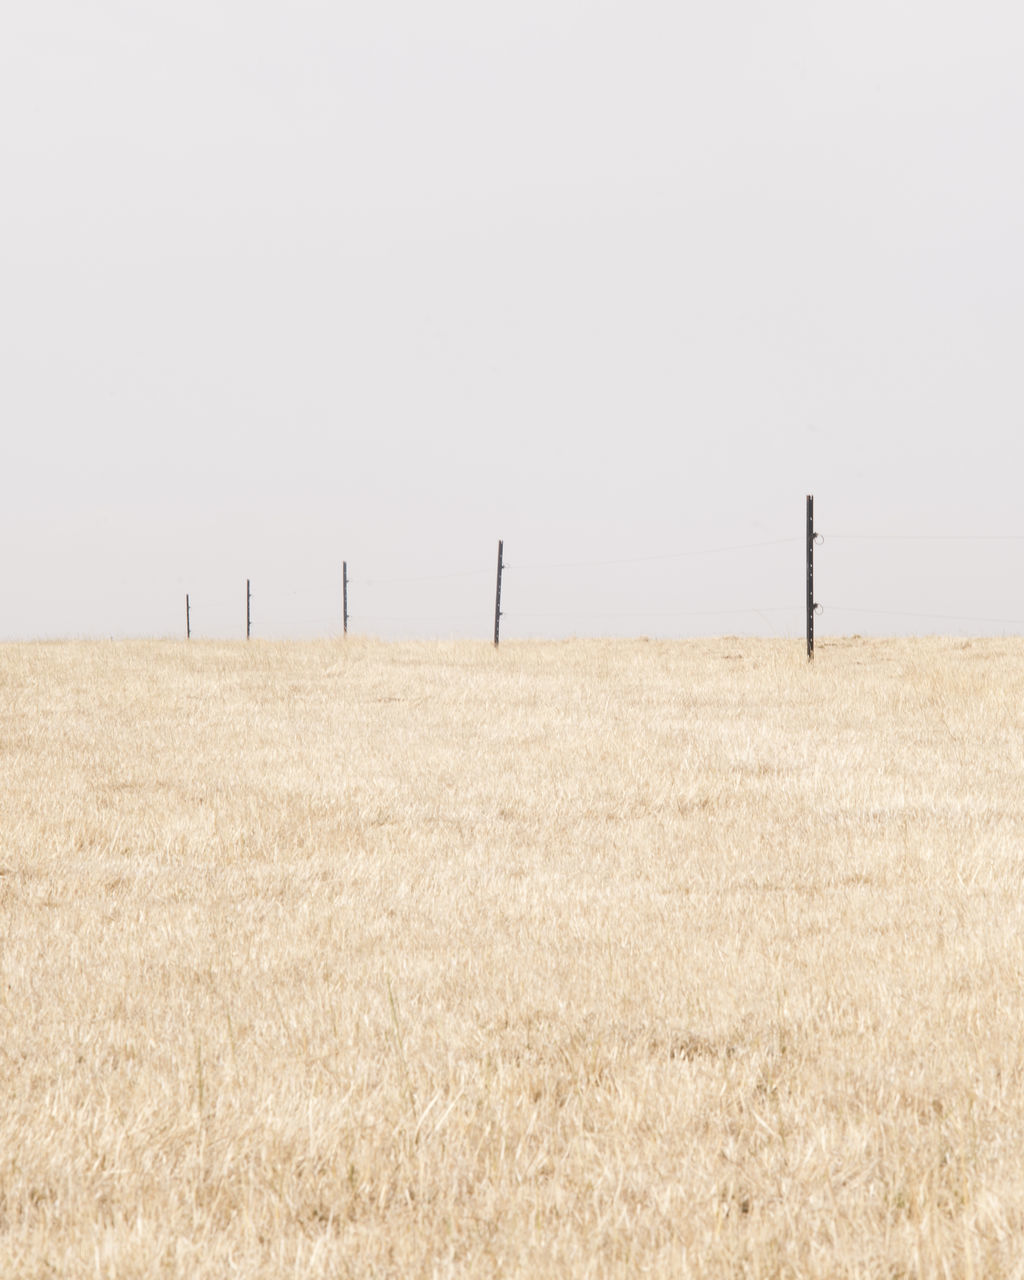 copy space, clear sky, field, landscape, tranquil scene, tranquility, rural scene, agriculture, horizon over land, nature, scenics, beauty in nature, farm, no people, day, outdoors, remote, growth, crop, dry